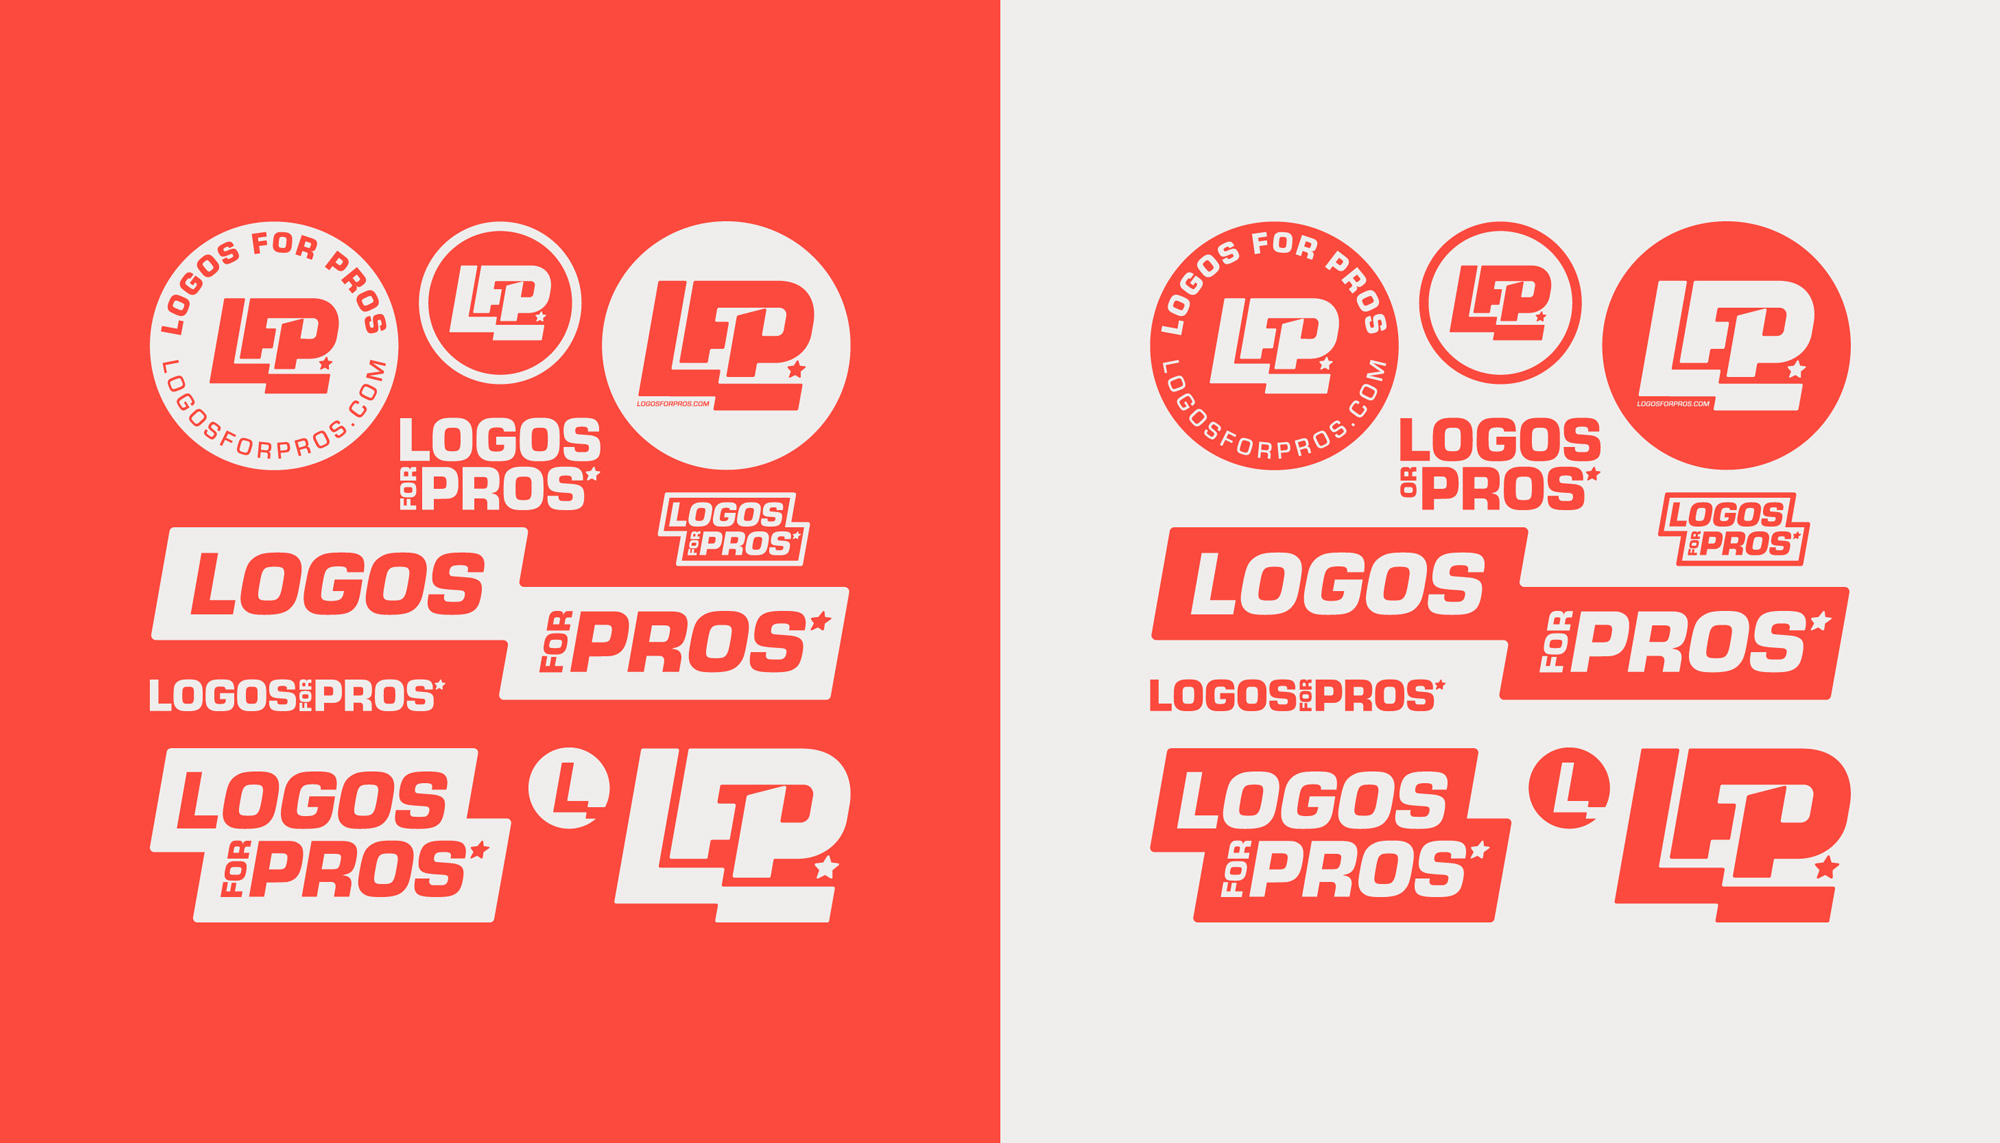 Logos for Pros - 1-color